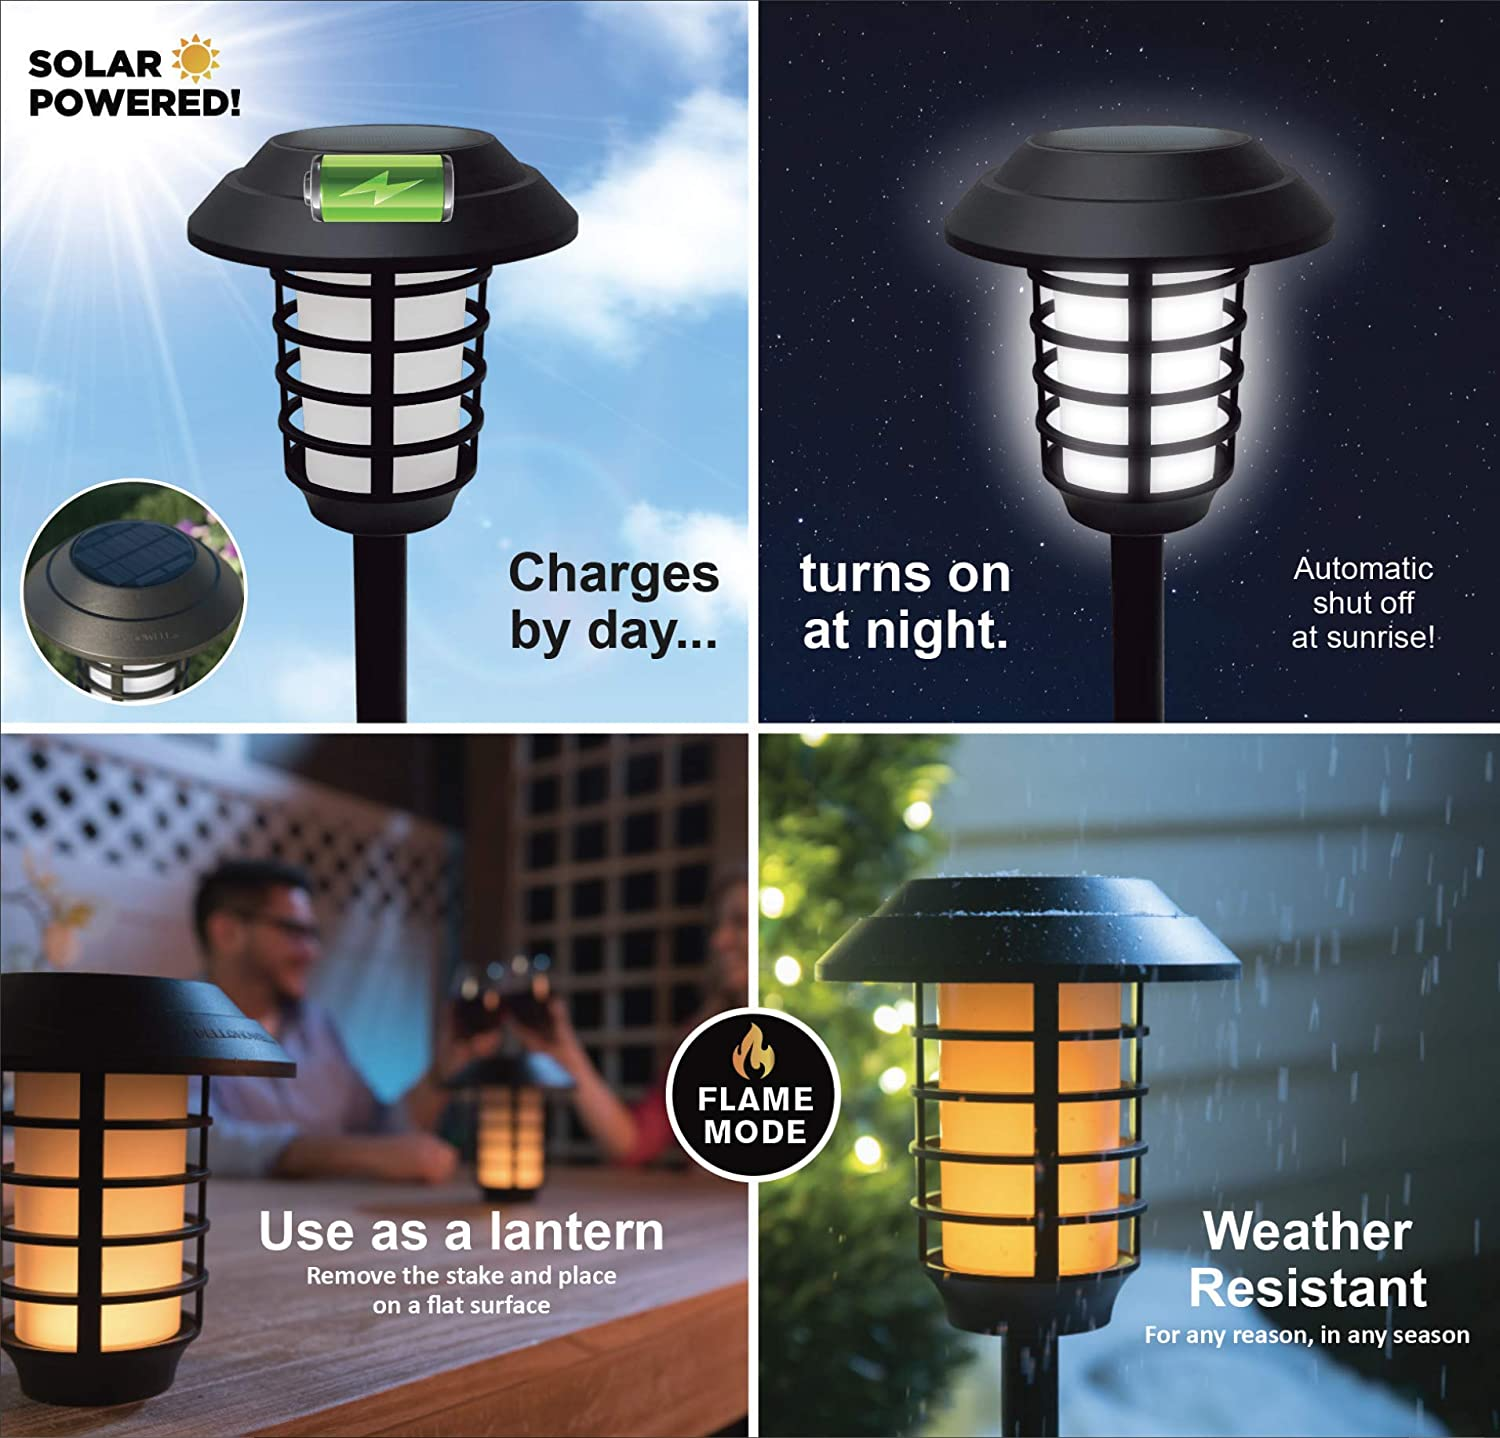 4 Pack Howell 2905 Smart Pathway Lights 2-in-1 XL Bright White /& Flickering Flame Solar Torches Waterproof Bell Black